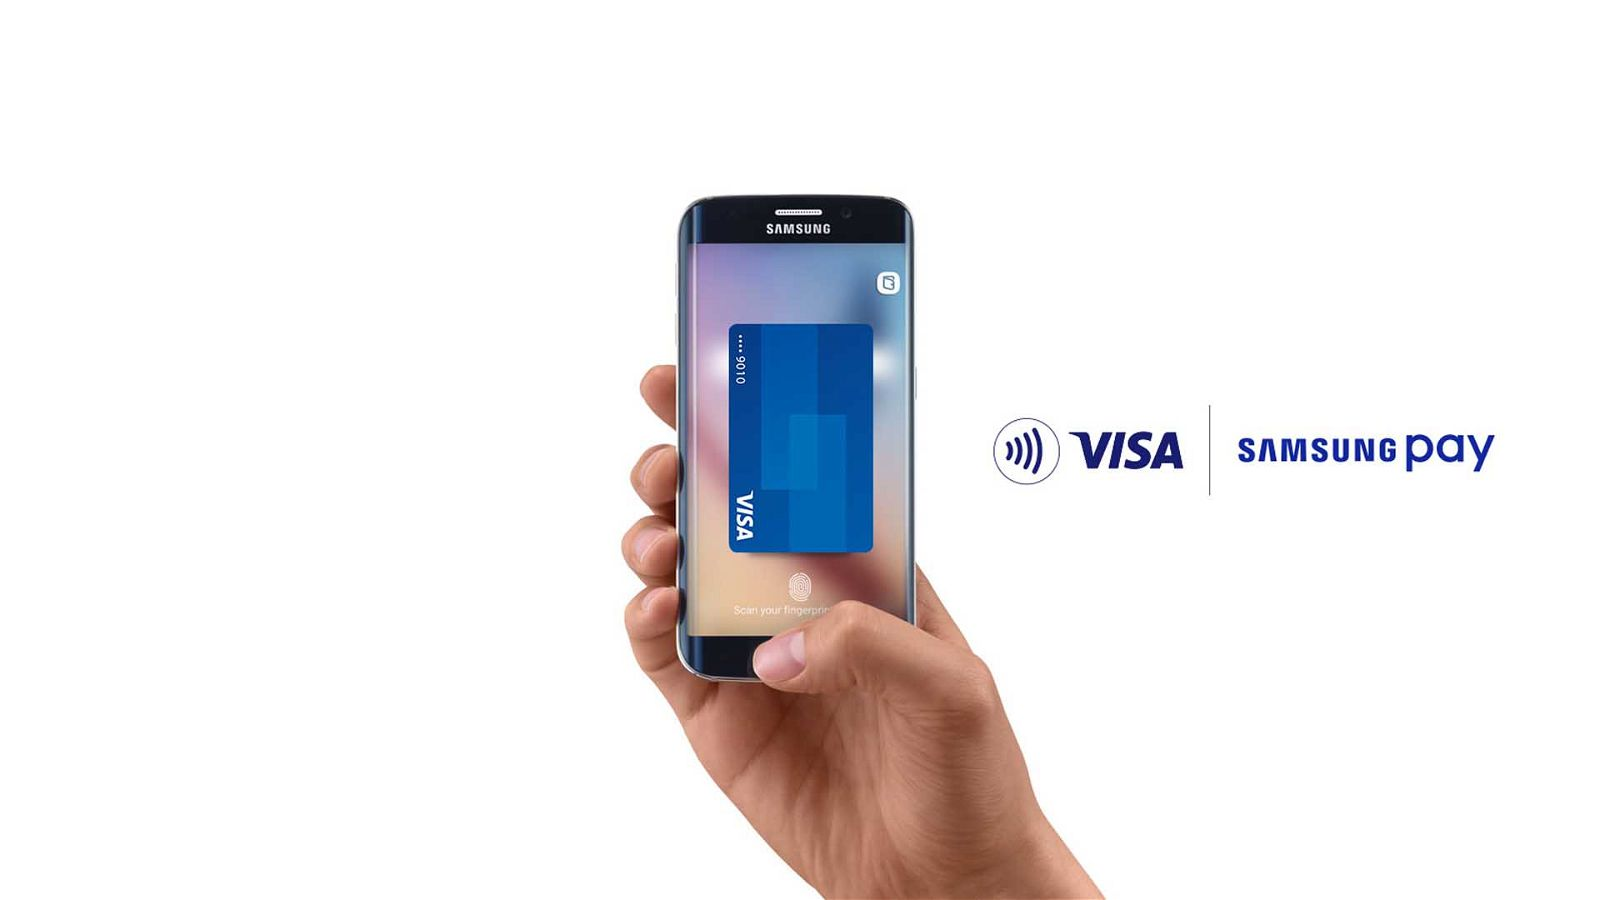 خدمة Samsung Pay